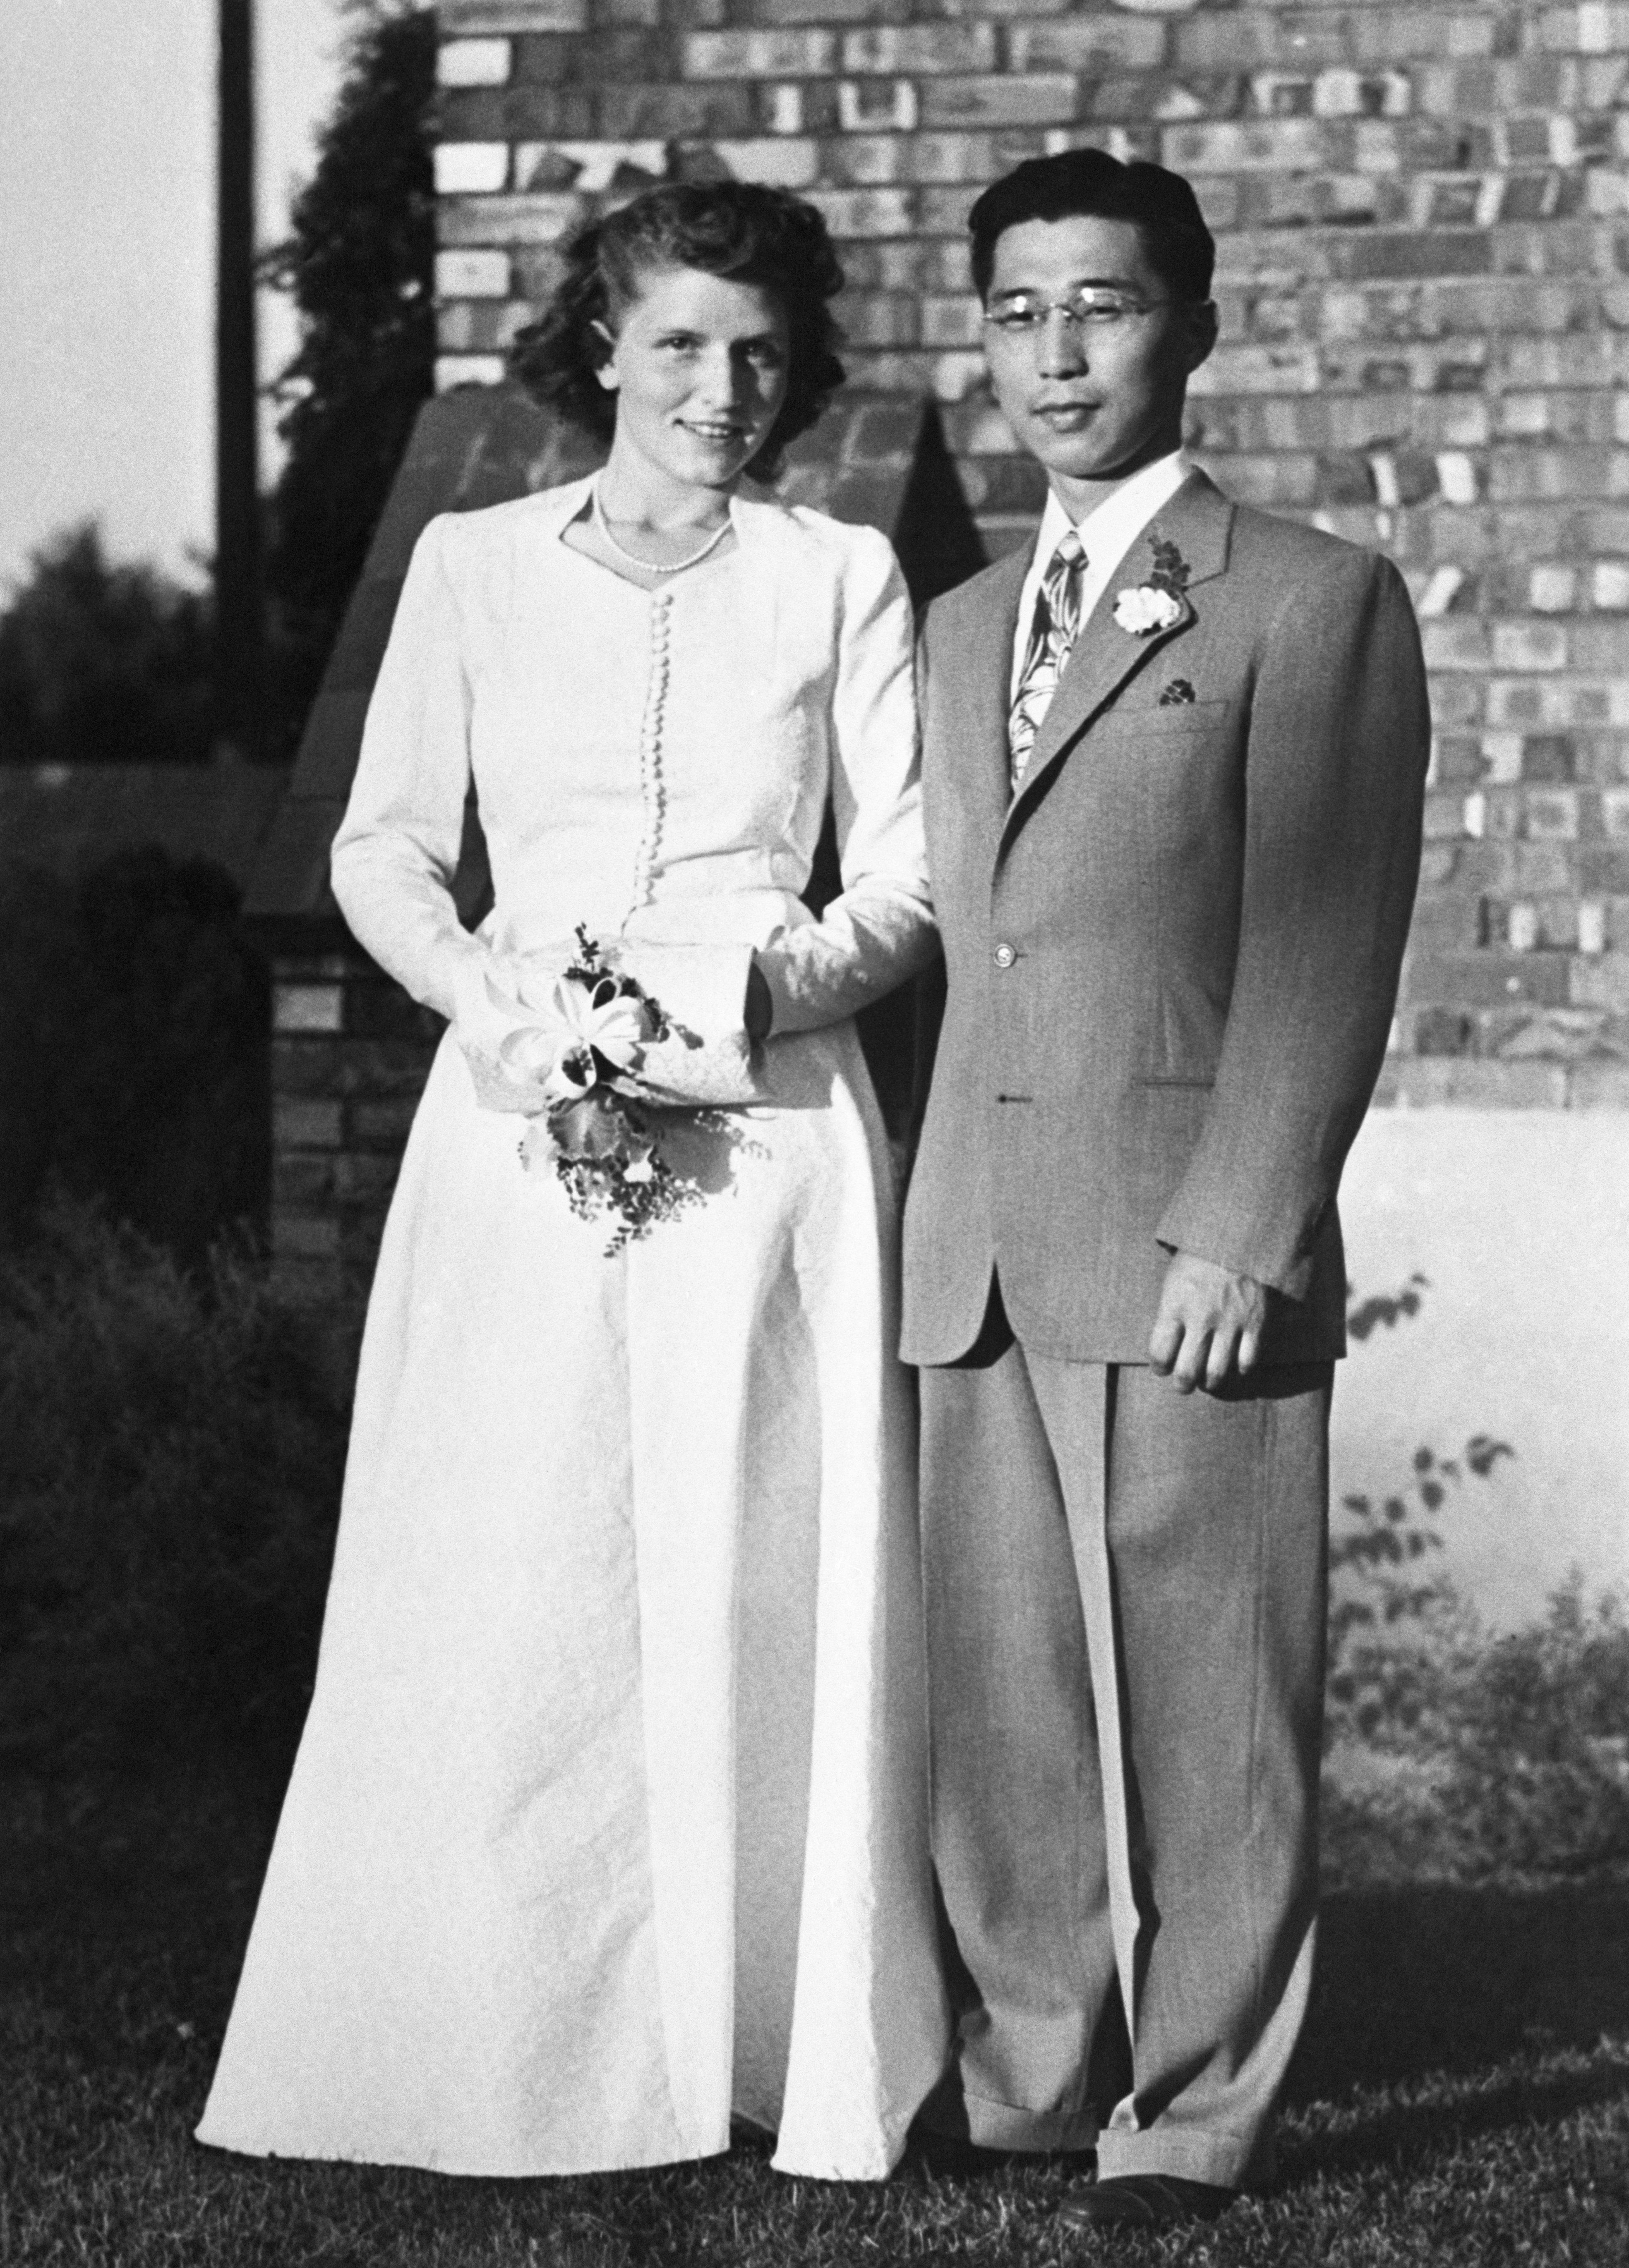 Gordon K. Hirabayashi and his bride, Esther Schmoe, after their Quaker wedding ceremony in Spokane, Washington. Both were stu